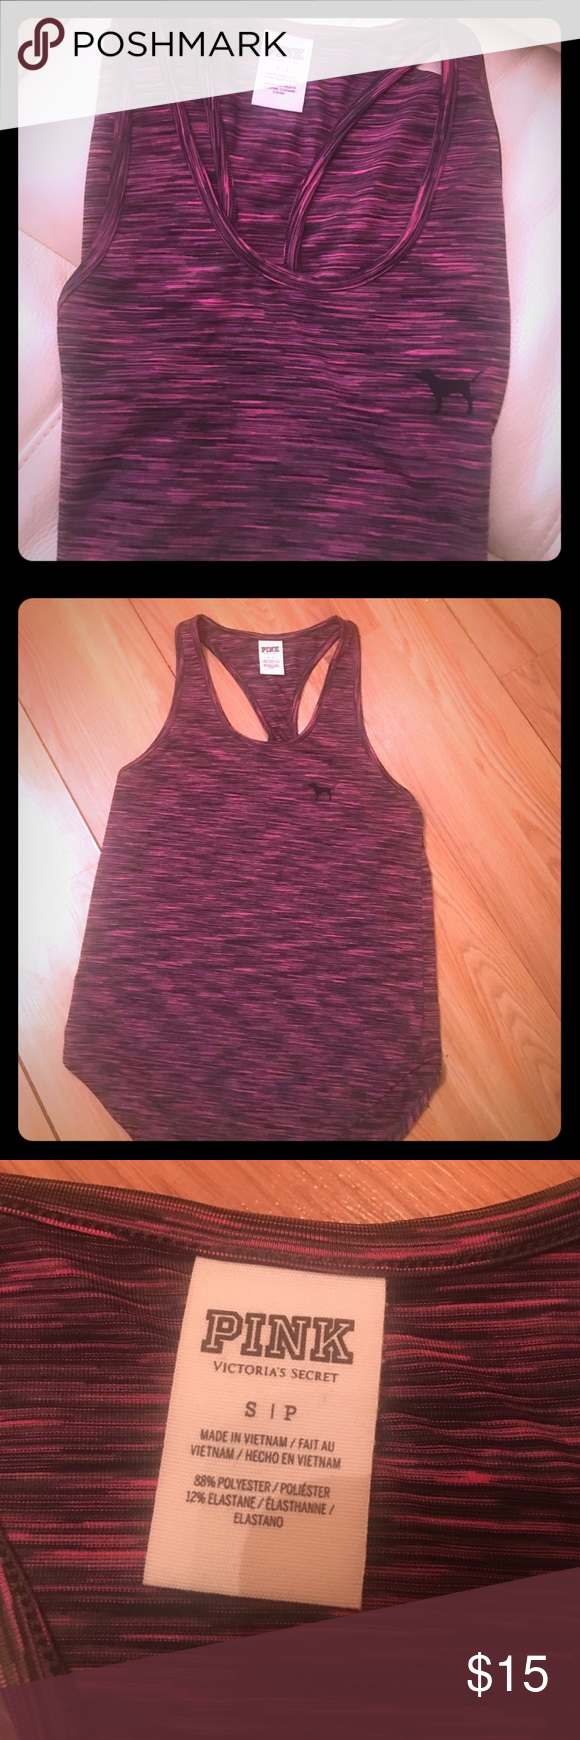 VS PINK workout racerback tank Victoria's Secret PINK racer back tank top with pink dog logo. Can use for yoga or working out or everyday casual wear.  Perfect condition :) PINK Victoria's Secret Tops Tank Tops